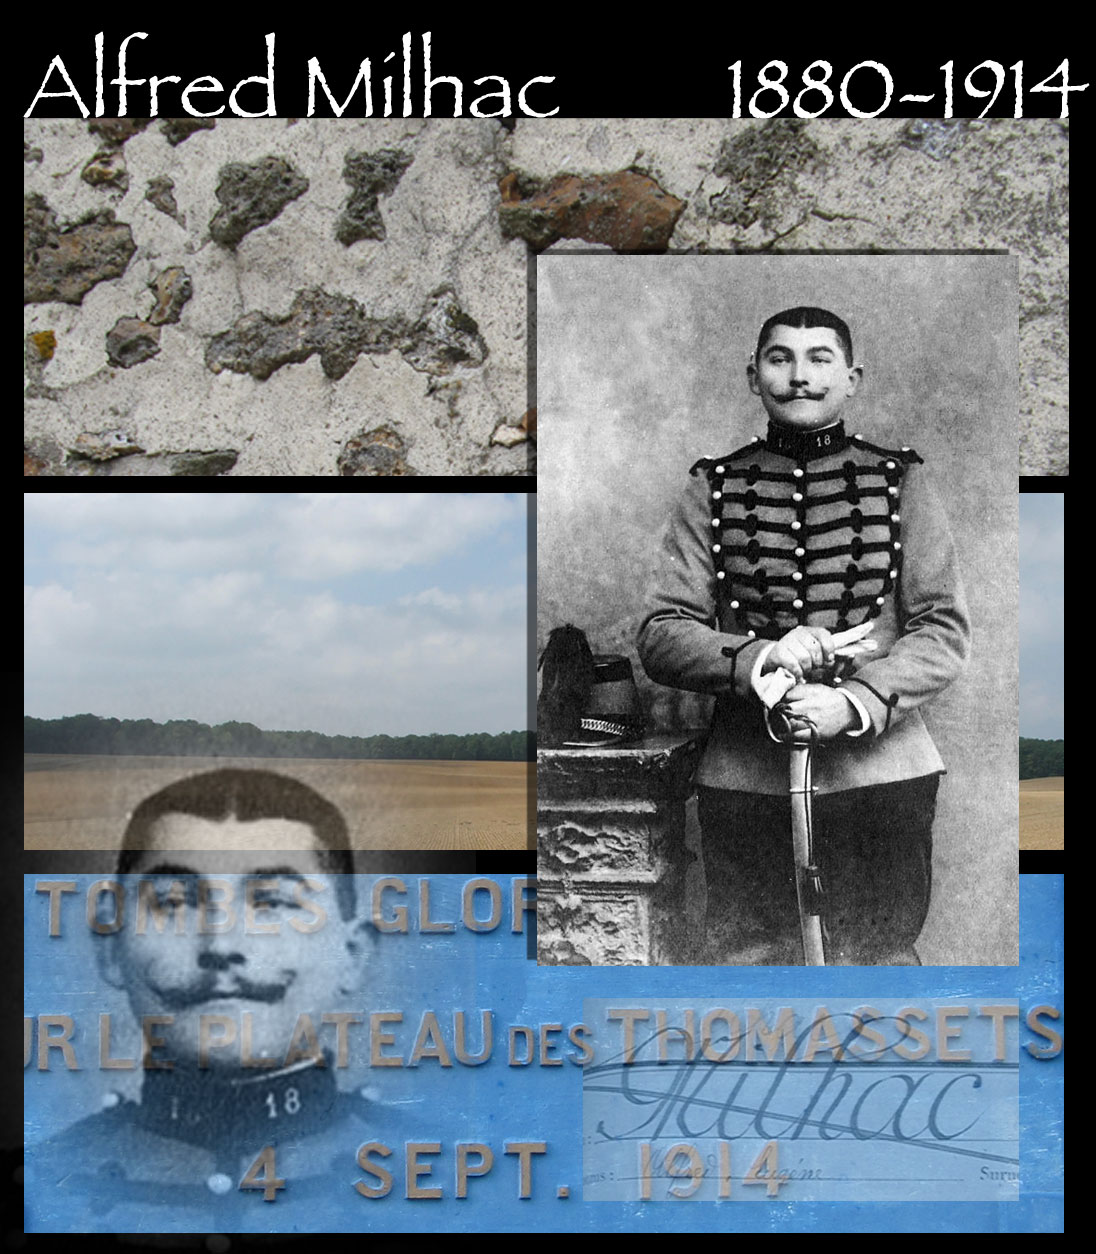 Alfred Milhac, tué le 4 septembre 1914 aux Thomassets. Photo : collection Laurent Rat.